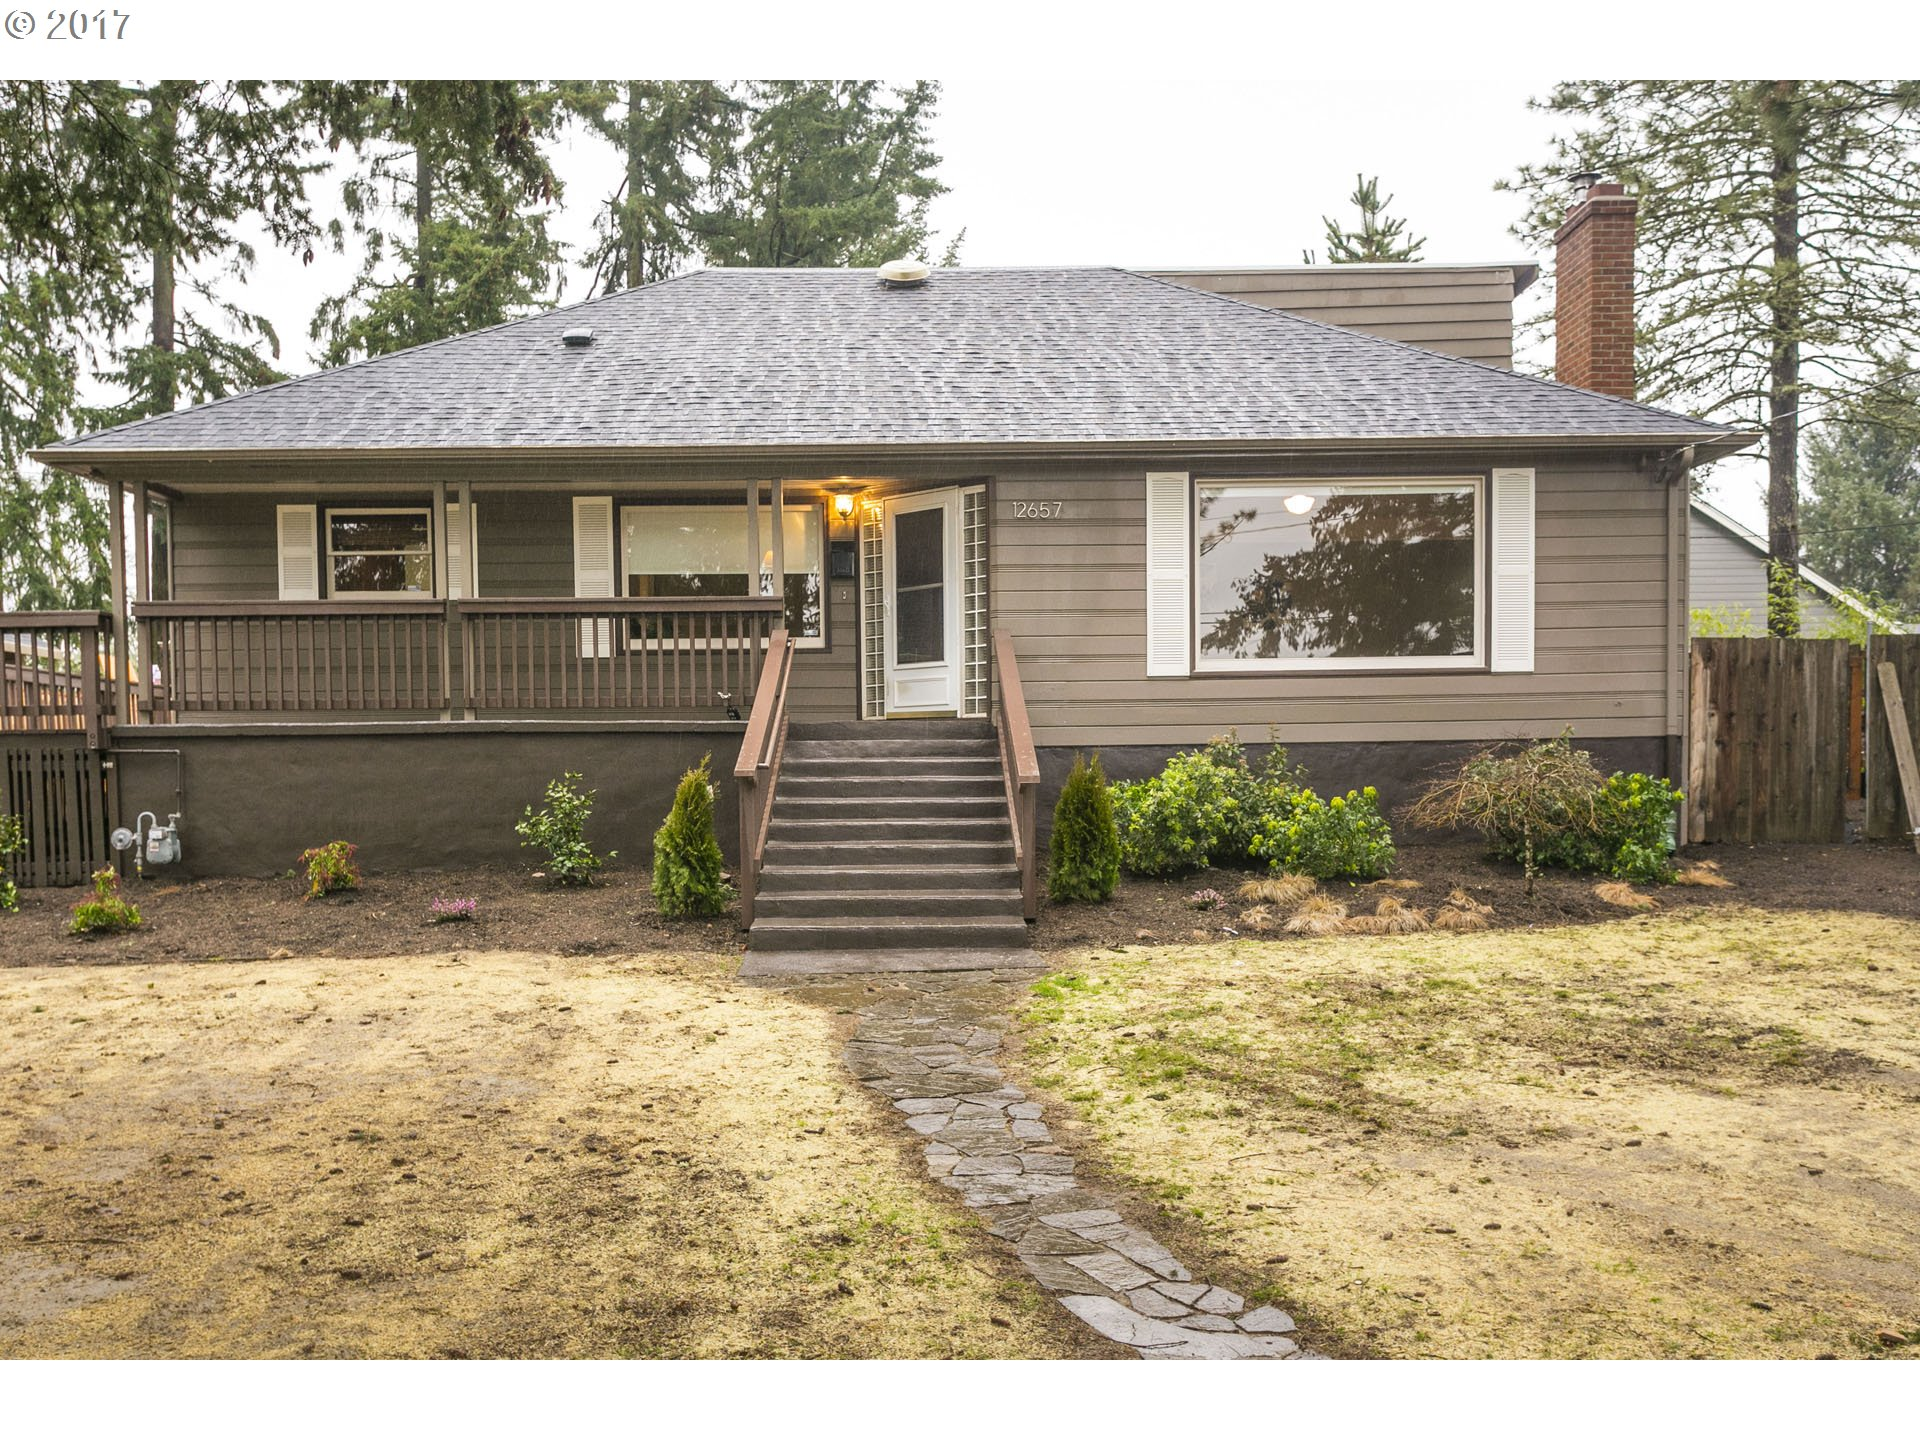 12657 SE 25TH AVE, Milwaukie, OR 97222